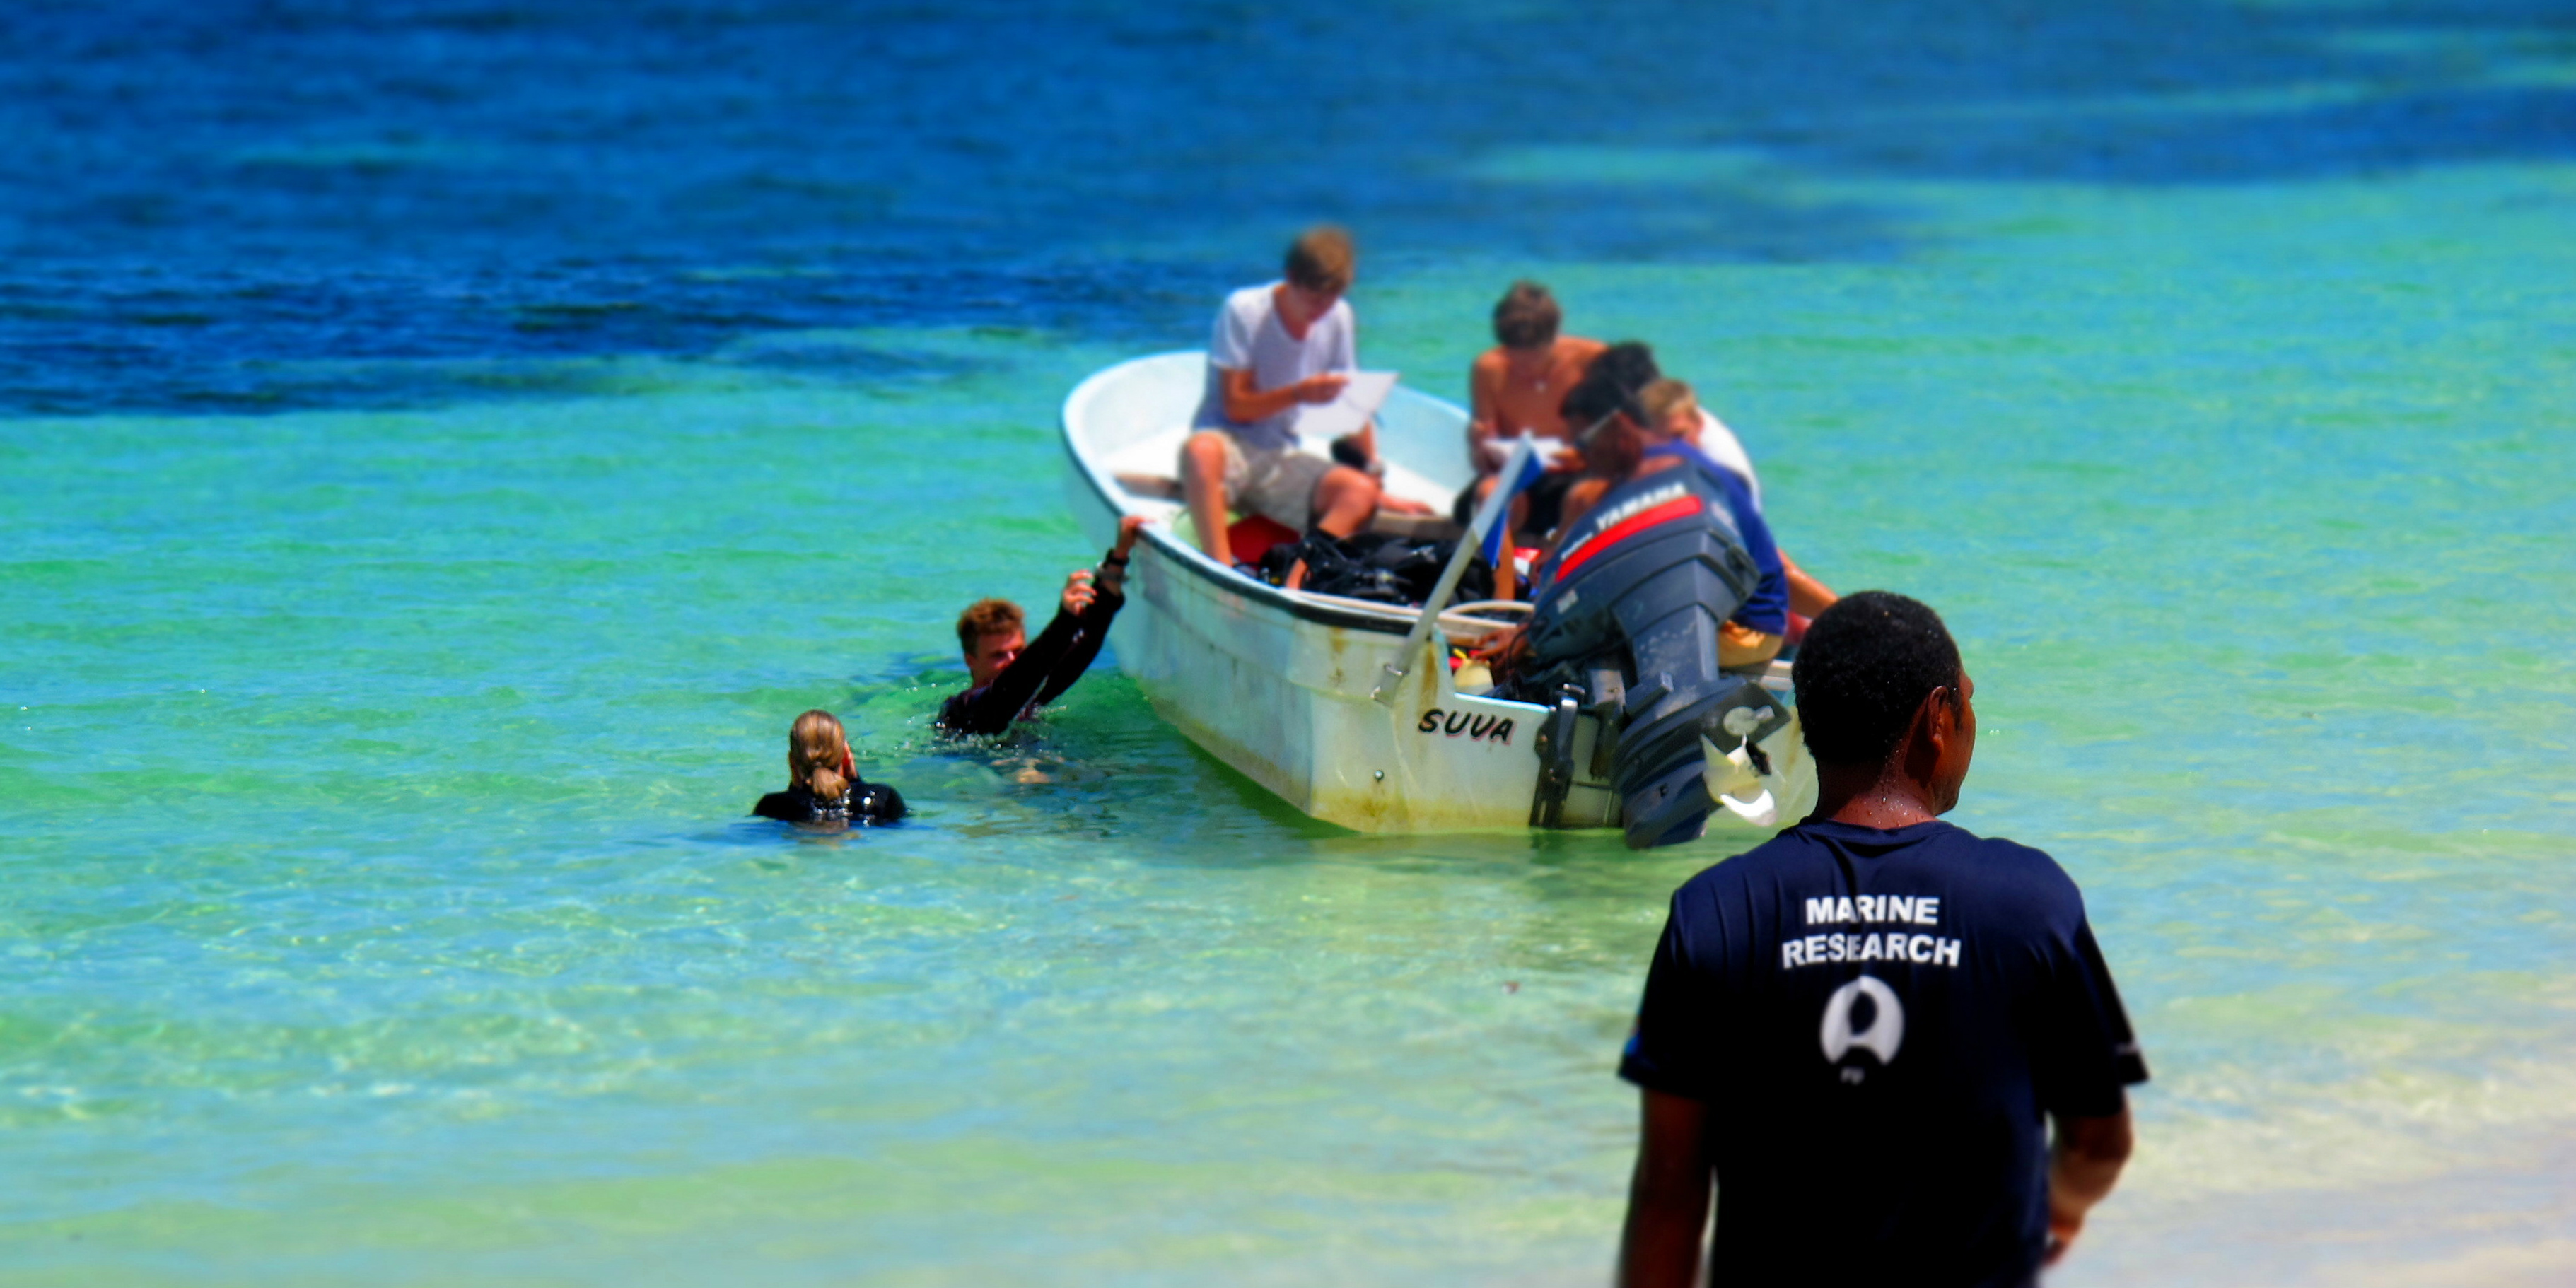 GVI participants head out to dive, as part of earning their PADI advanced open water.